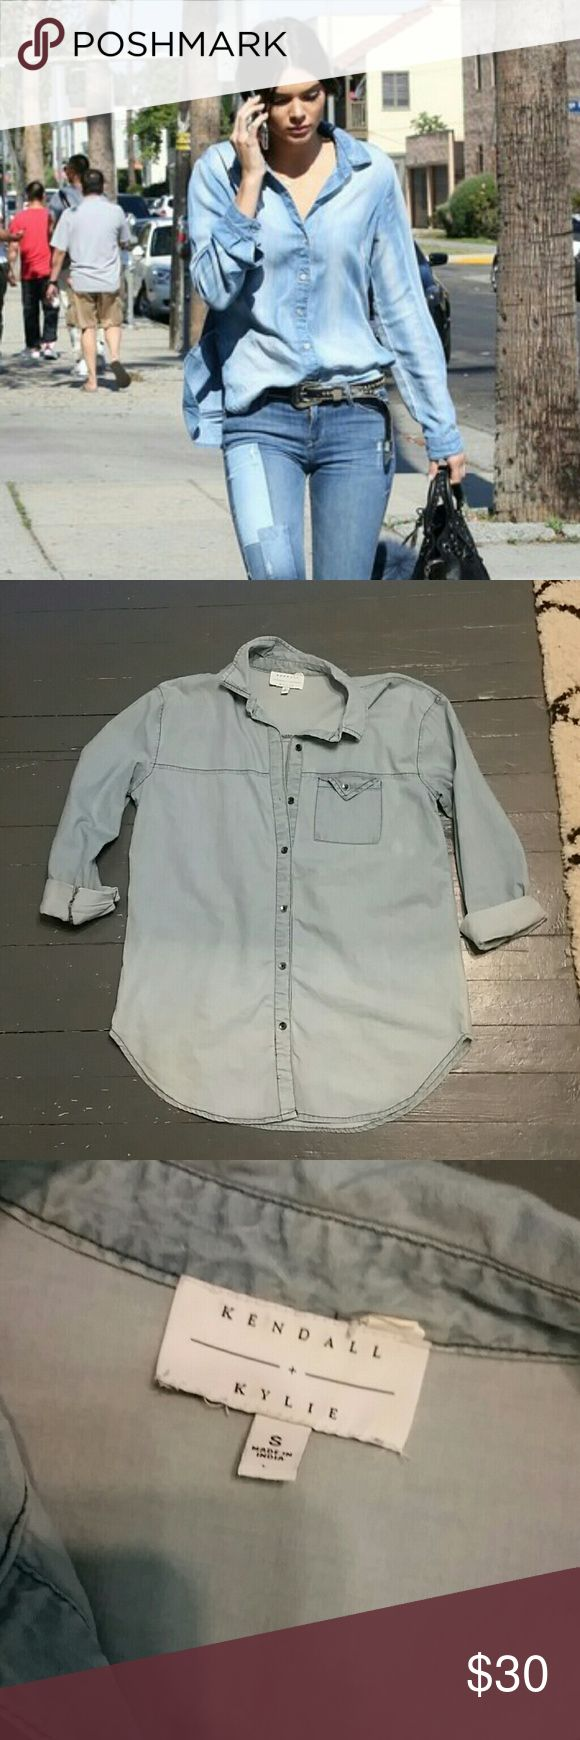 Denim Button Down Shirt Like new. Oversized ombre denim button up shirt. Reasonable offers always considered. Kendall & Kylie Tops Button Down Shirts